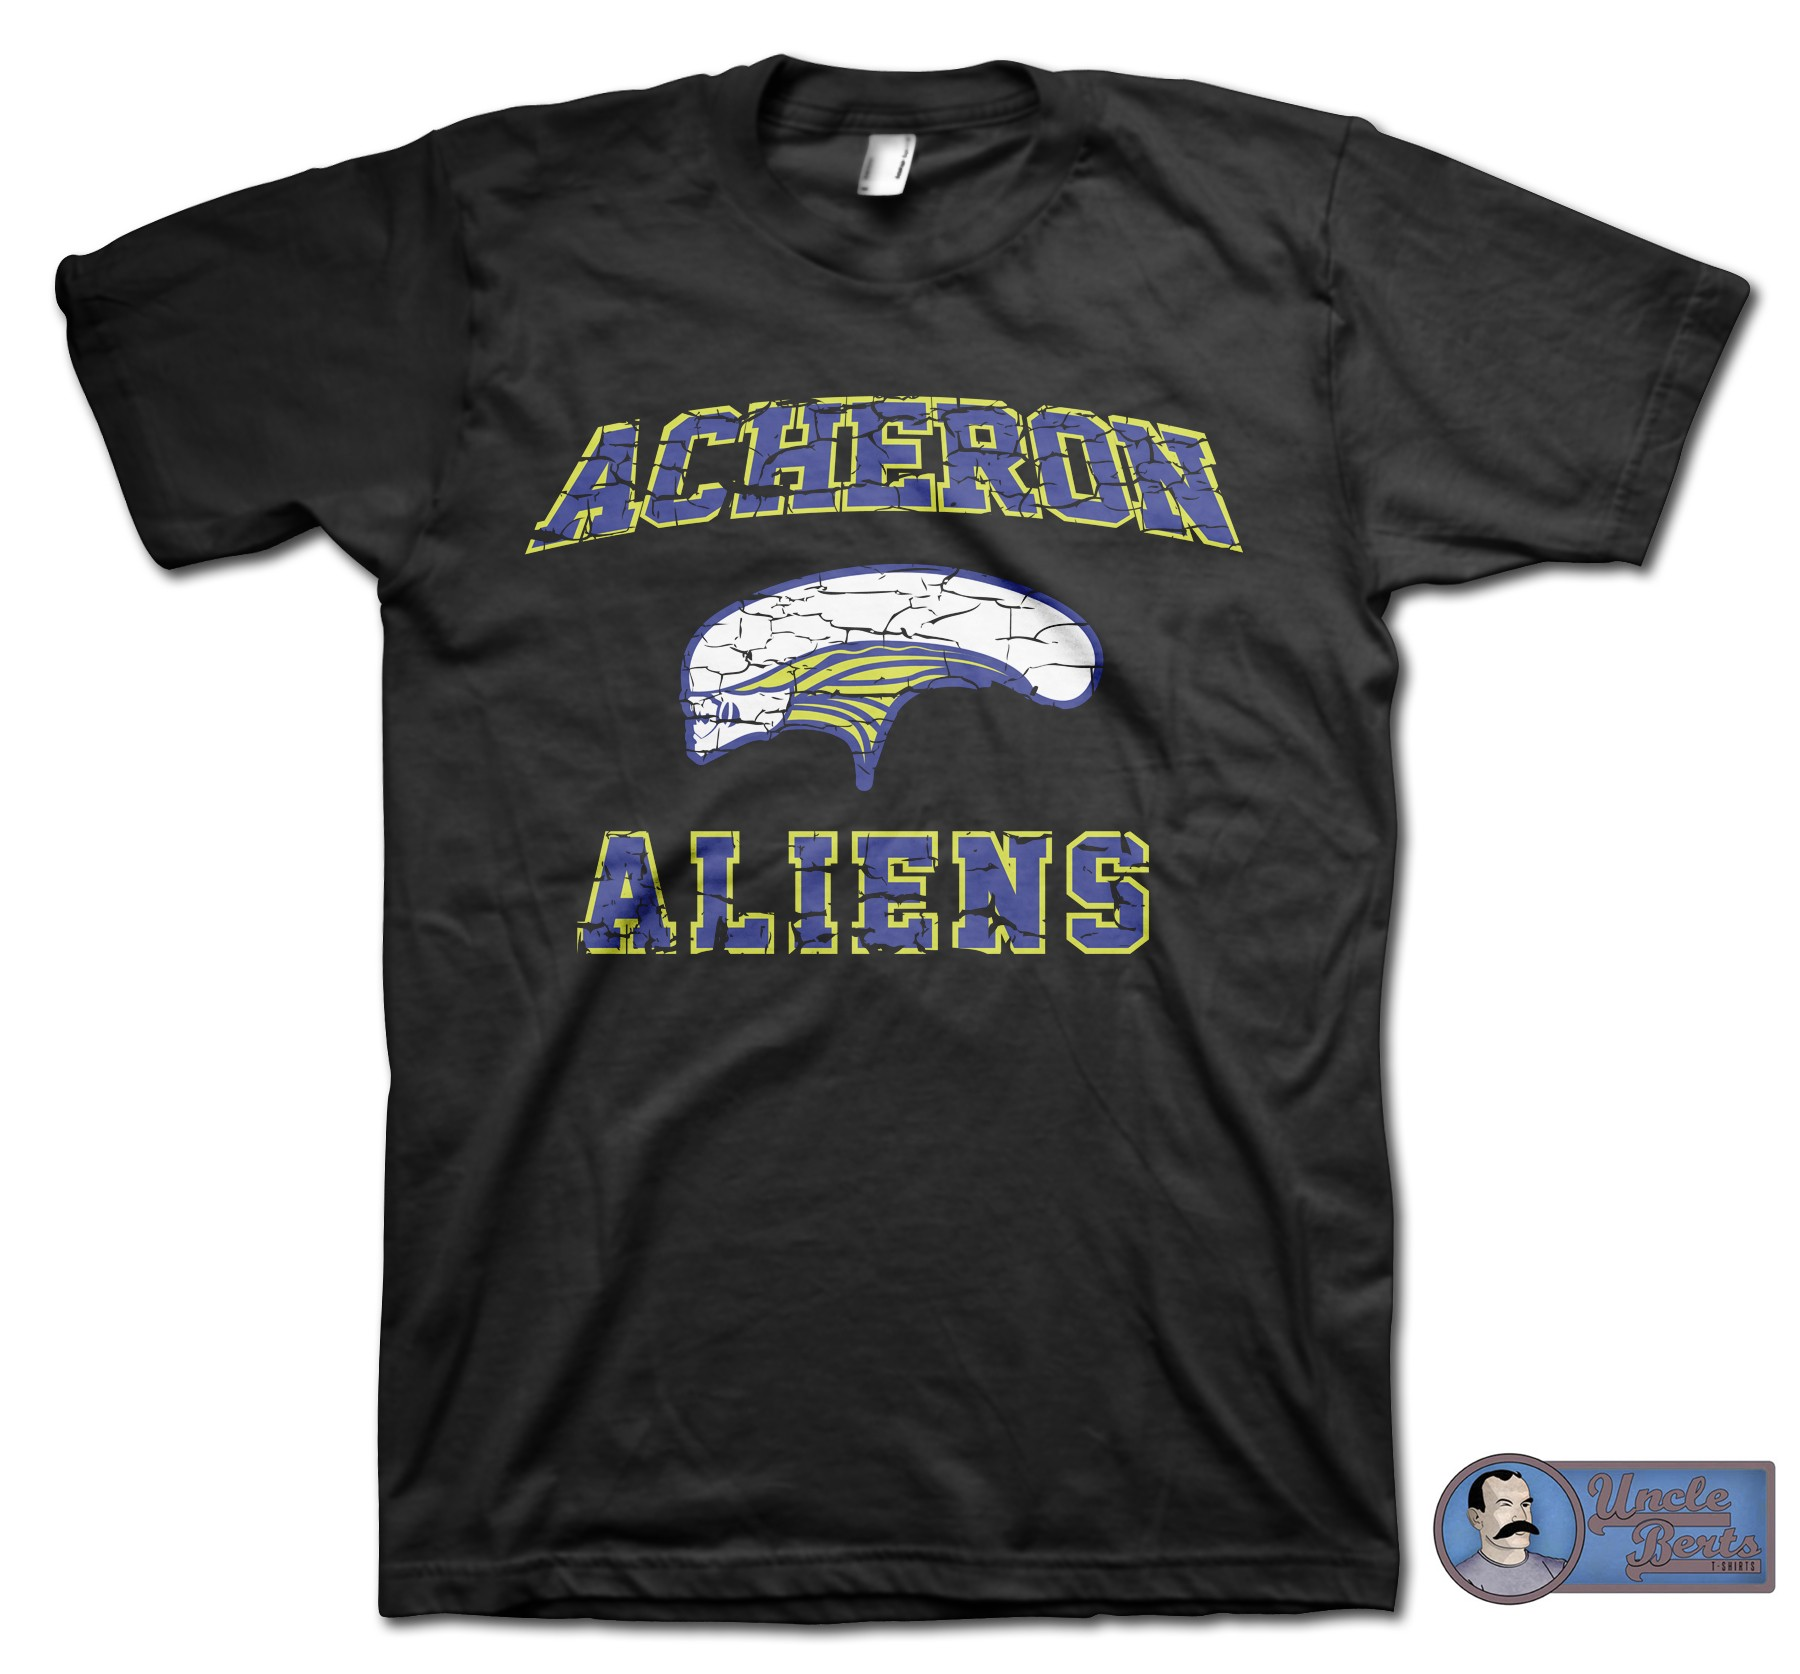 Alien (1979) Inspired Acheron Aliens Team T-Shirt